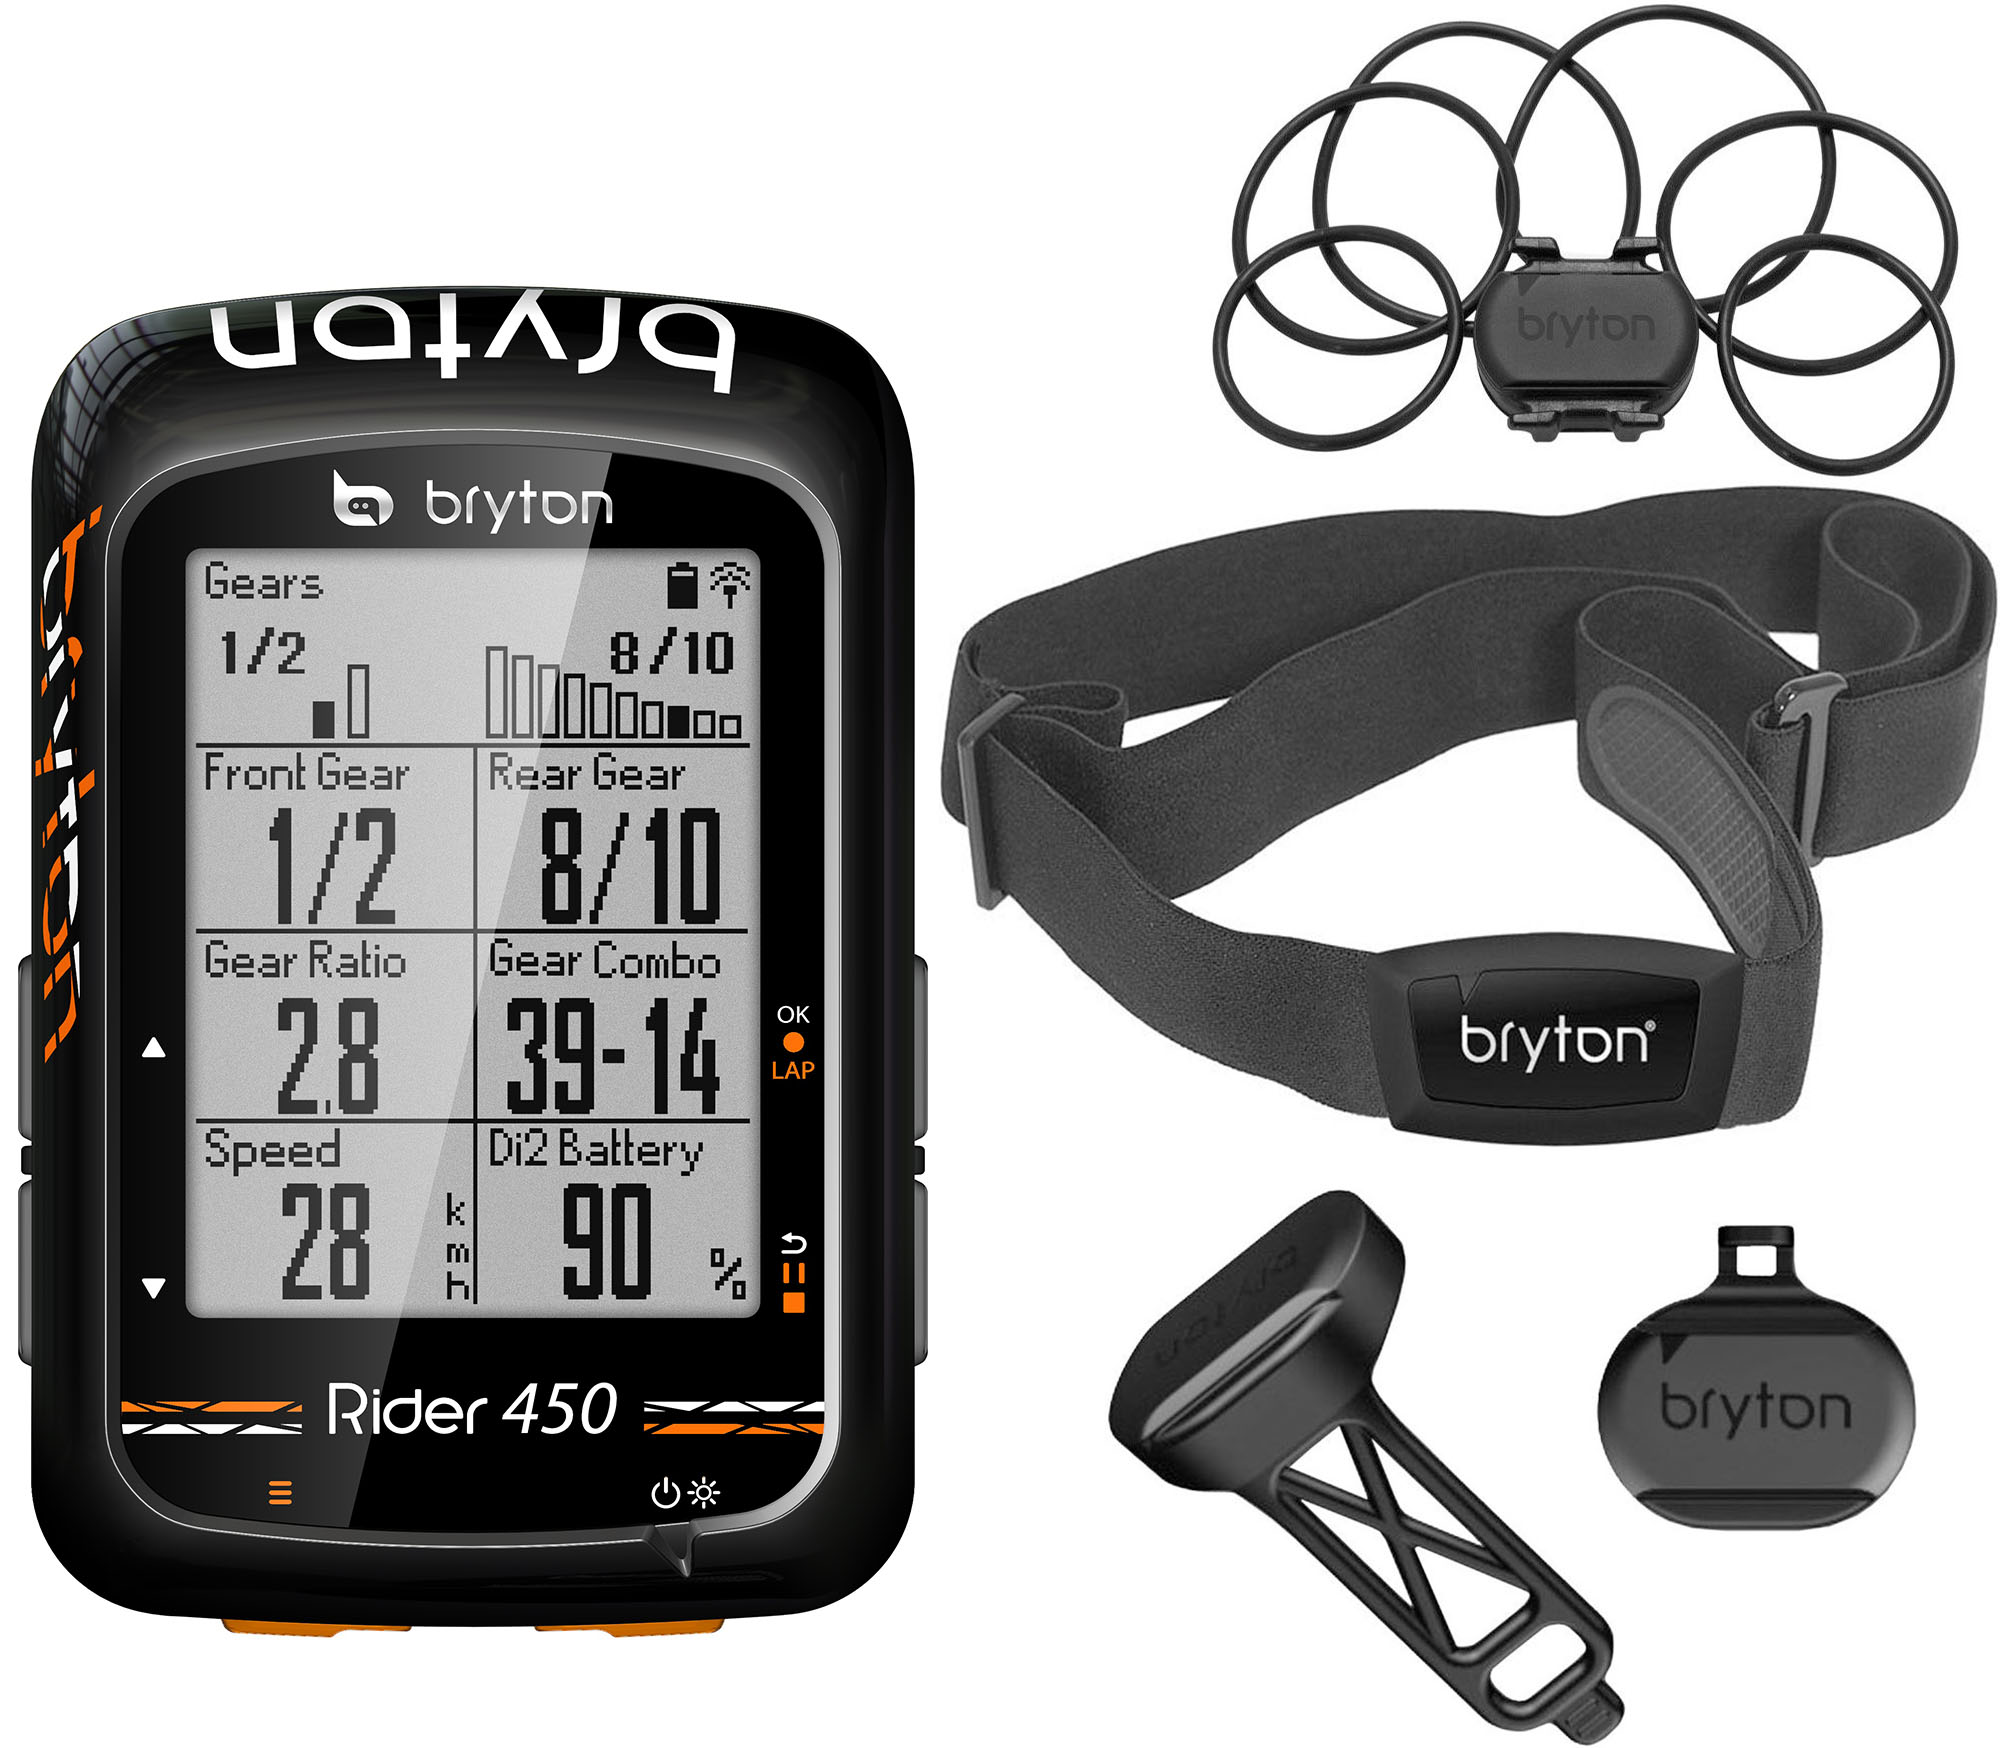 Wiggle | bryton Rider 450 With Cadence + Speed + HRM Bundle | Computers | Cycle computers